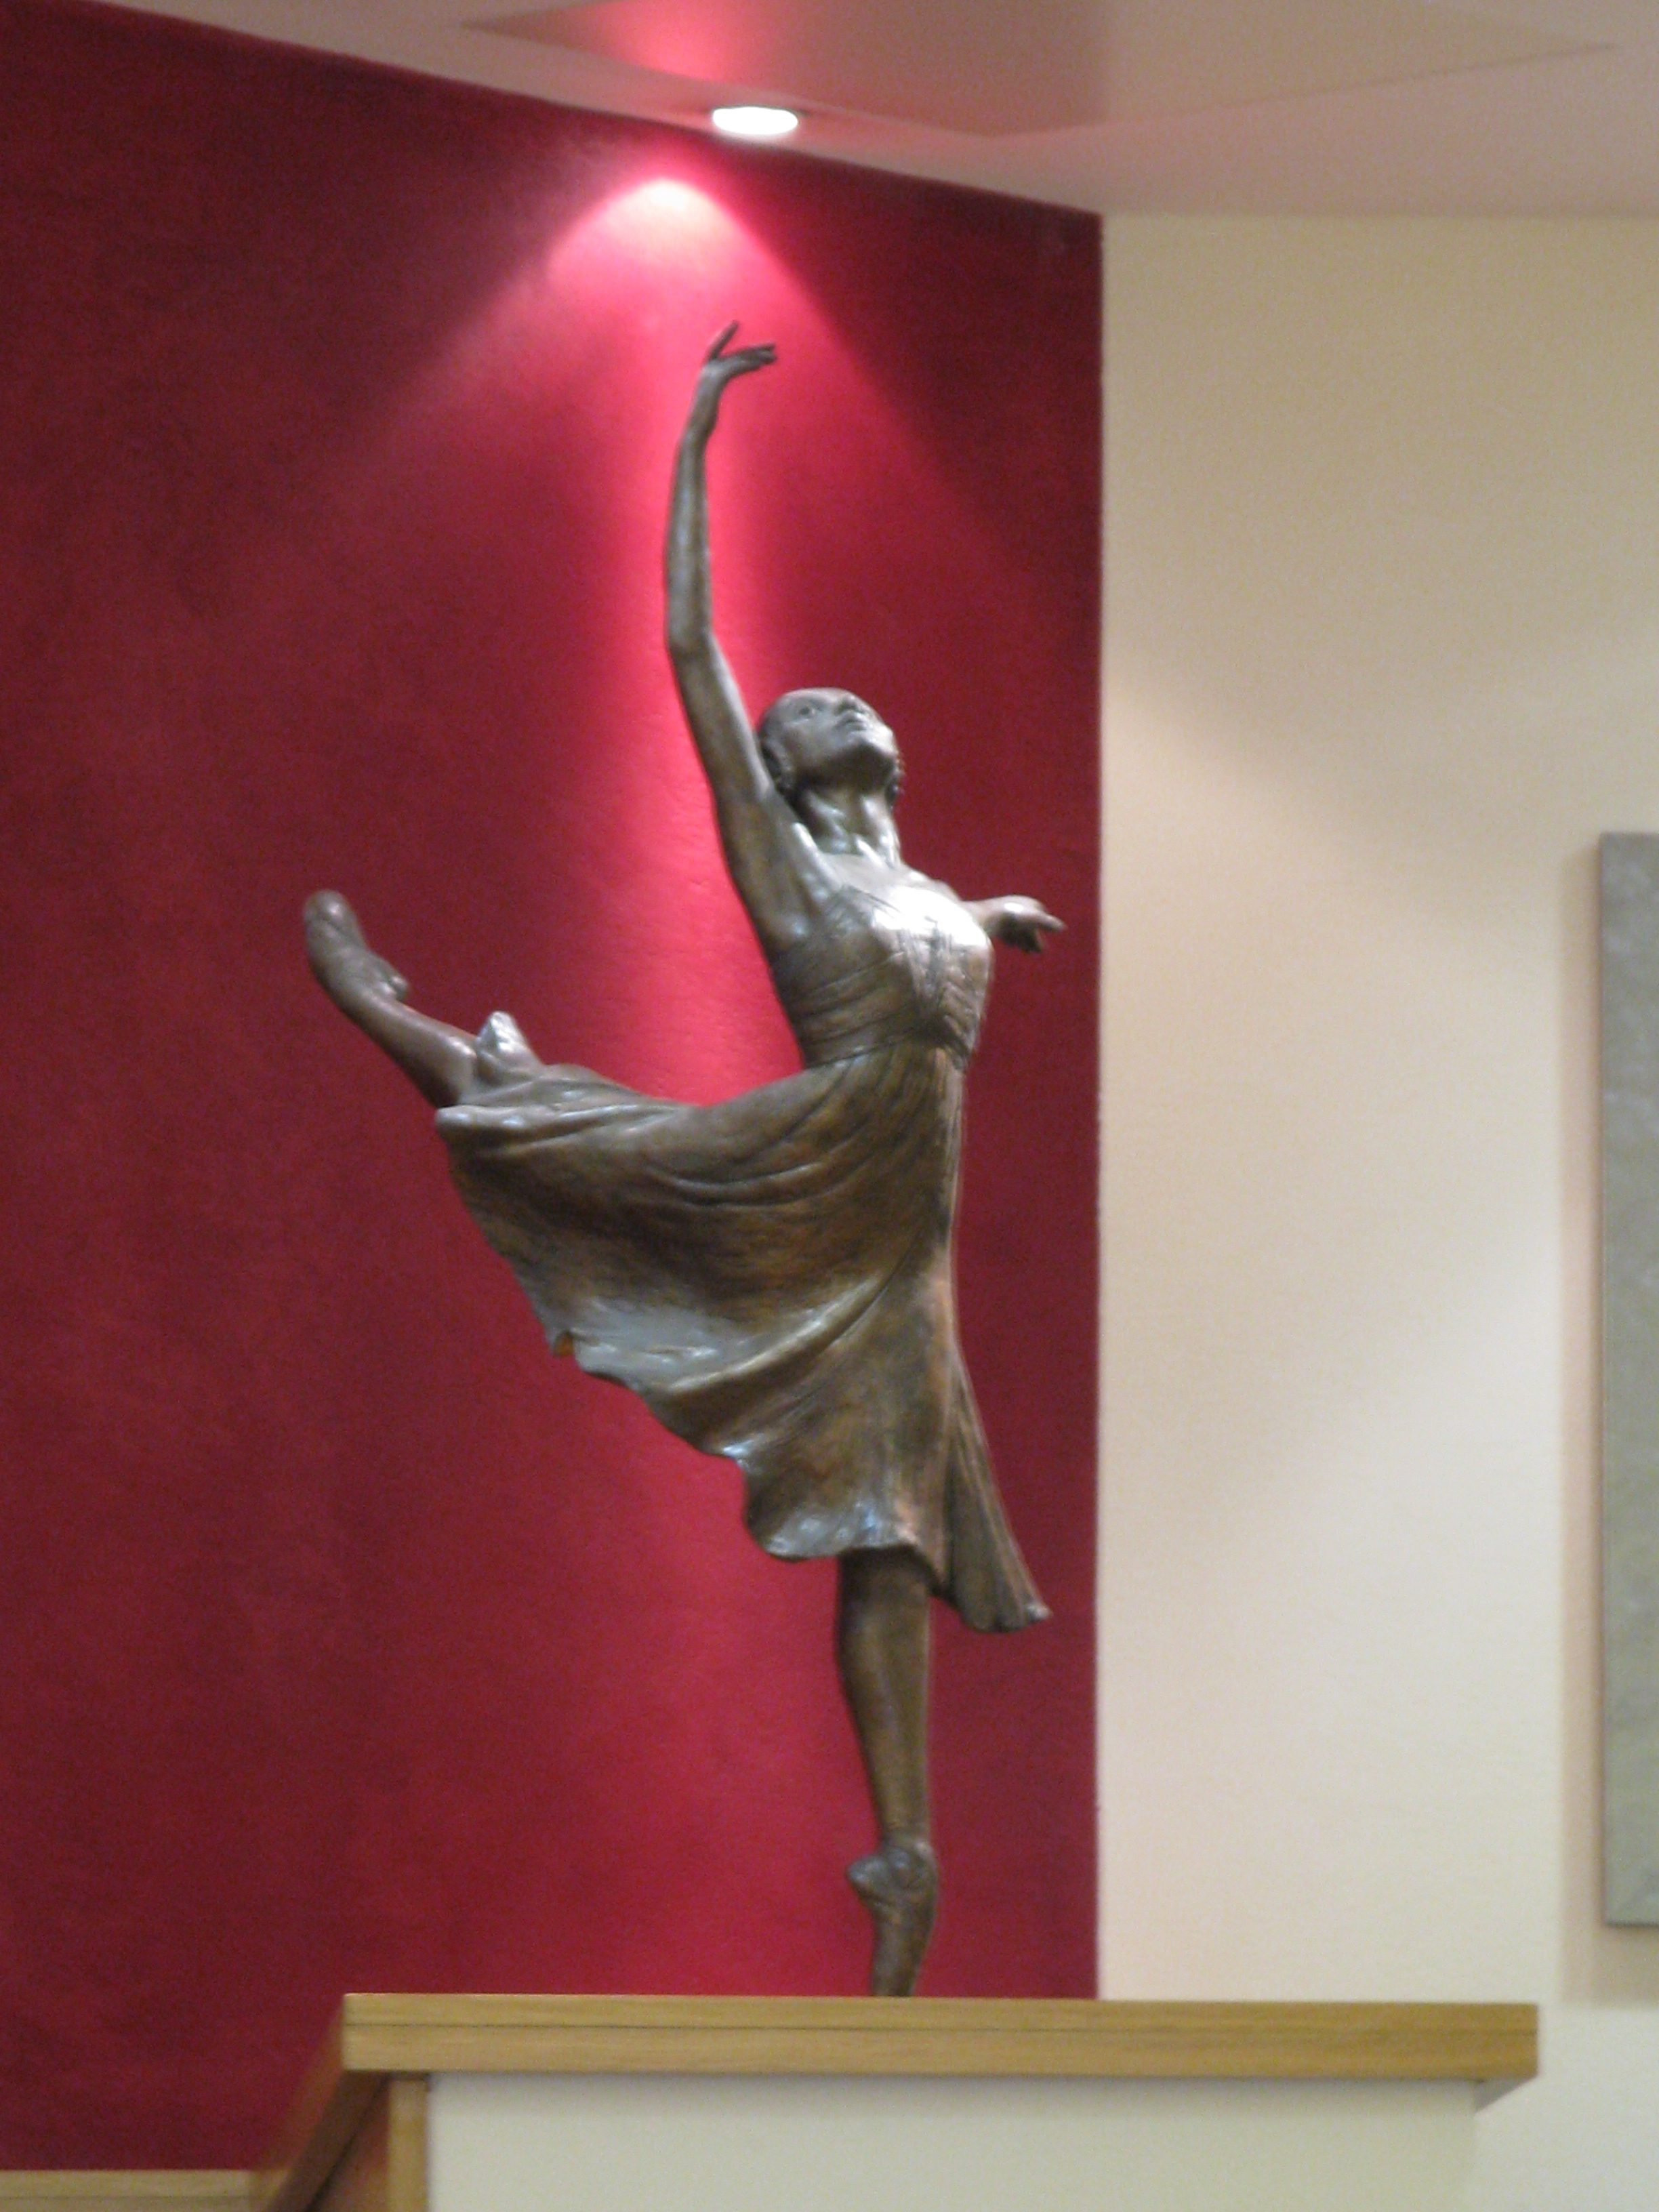 Statue of Alessandra Ferri as 'Juliet' by Nathan David inside the Royal Ballet School.